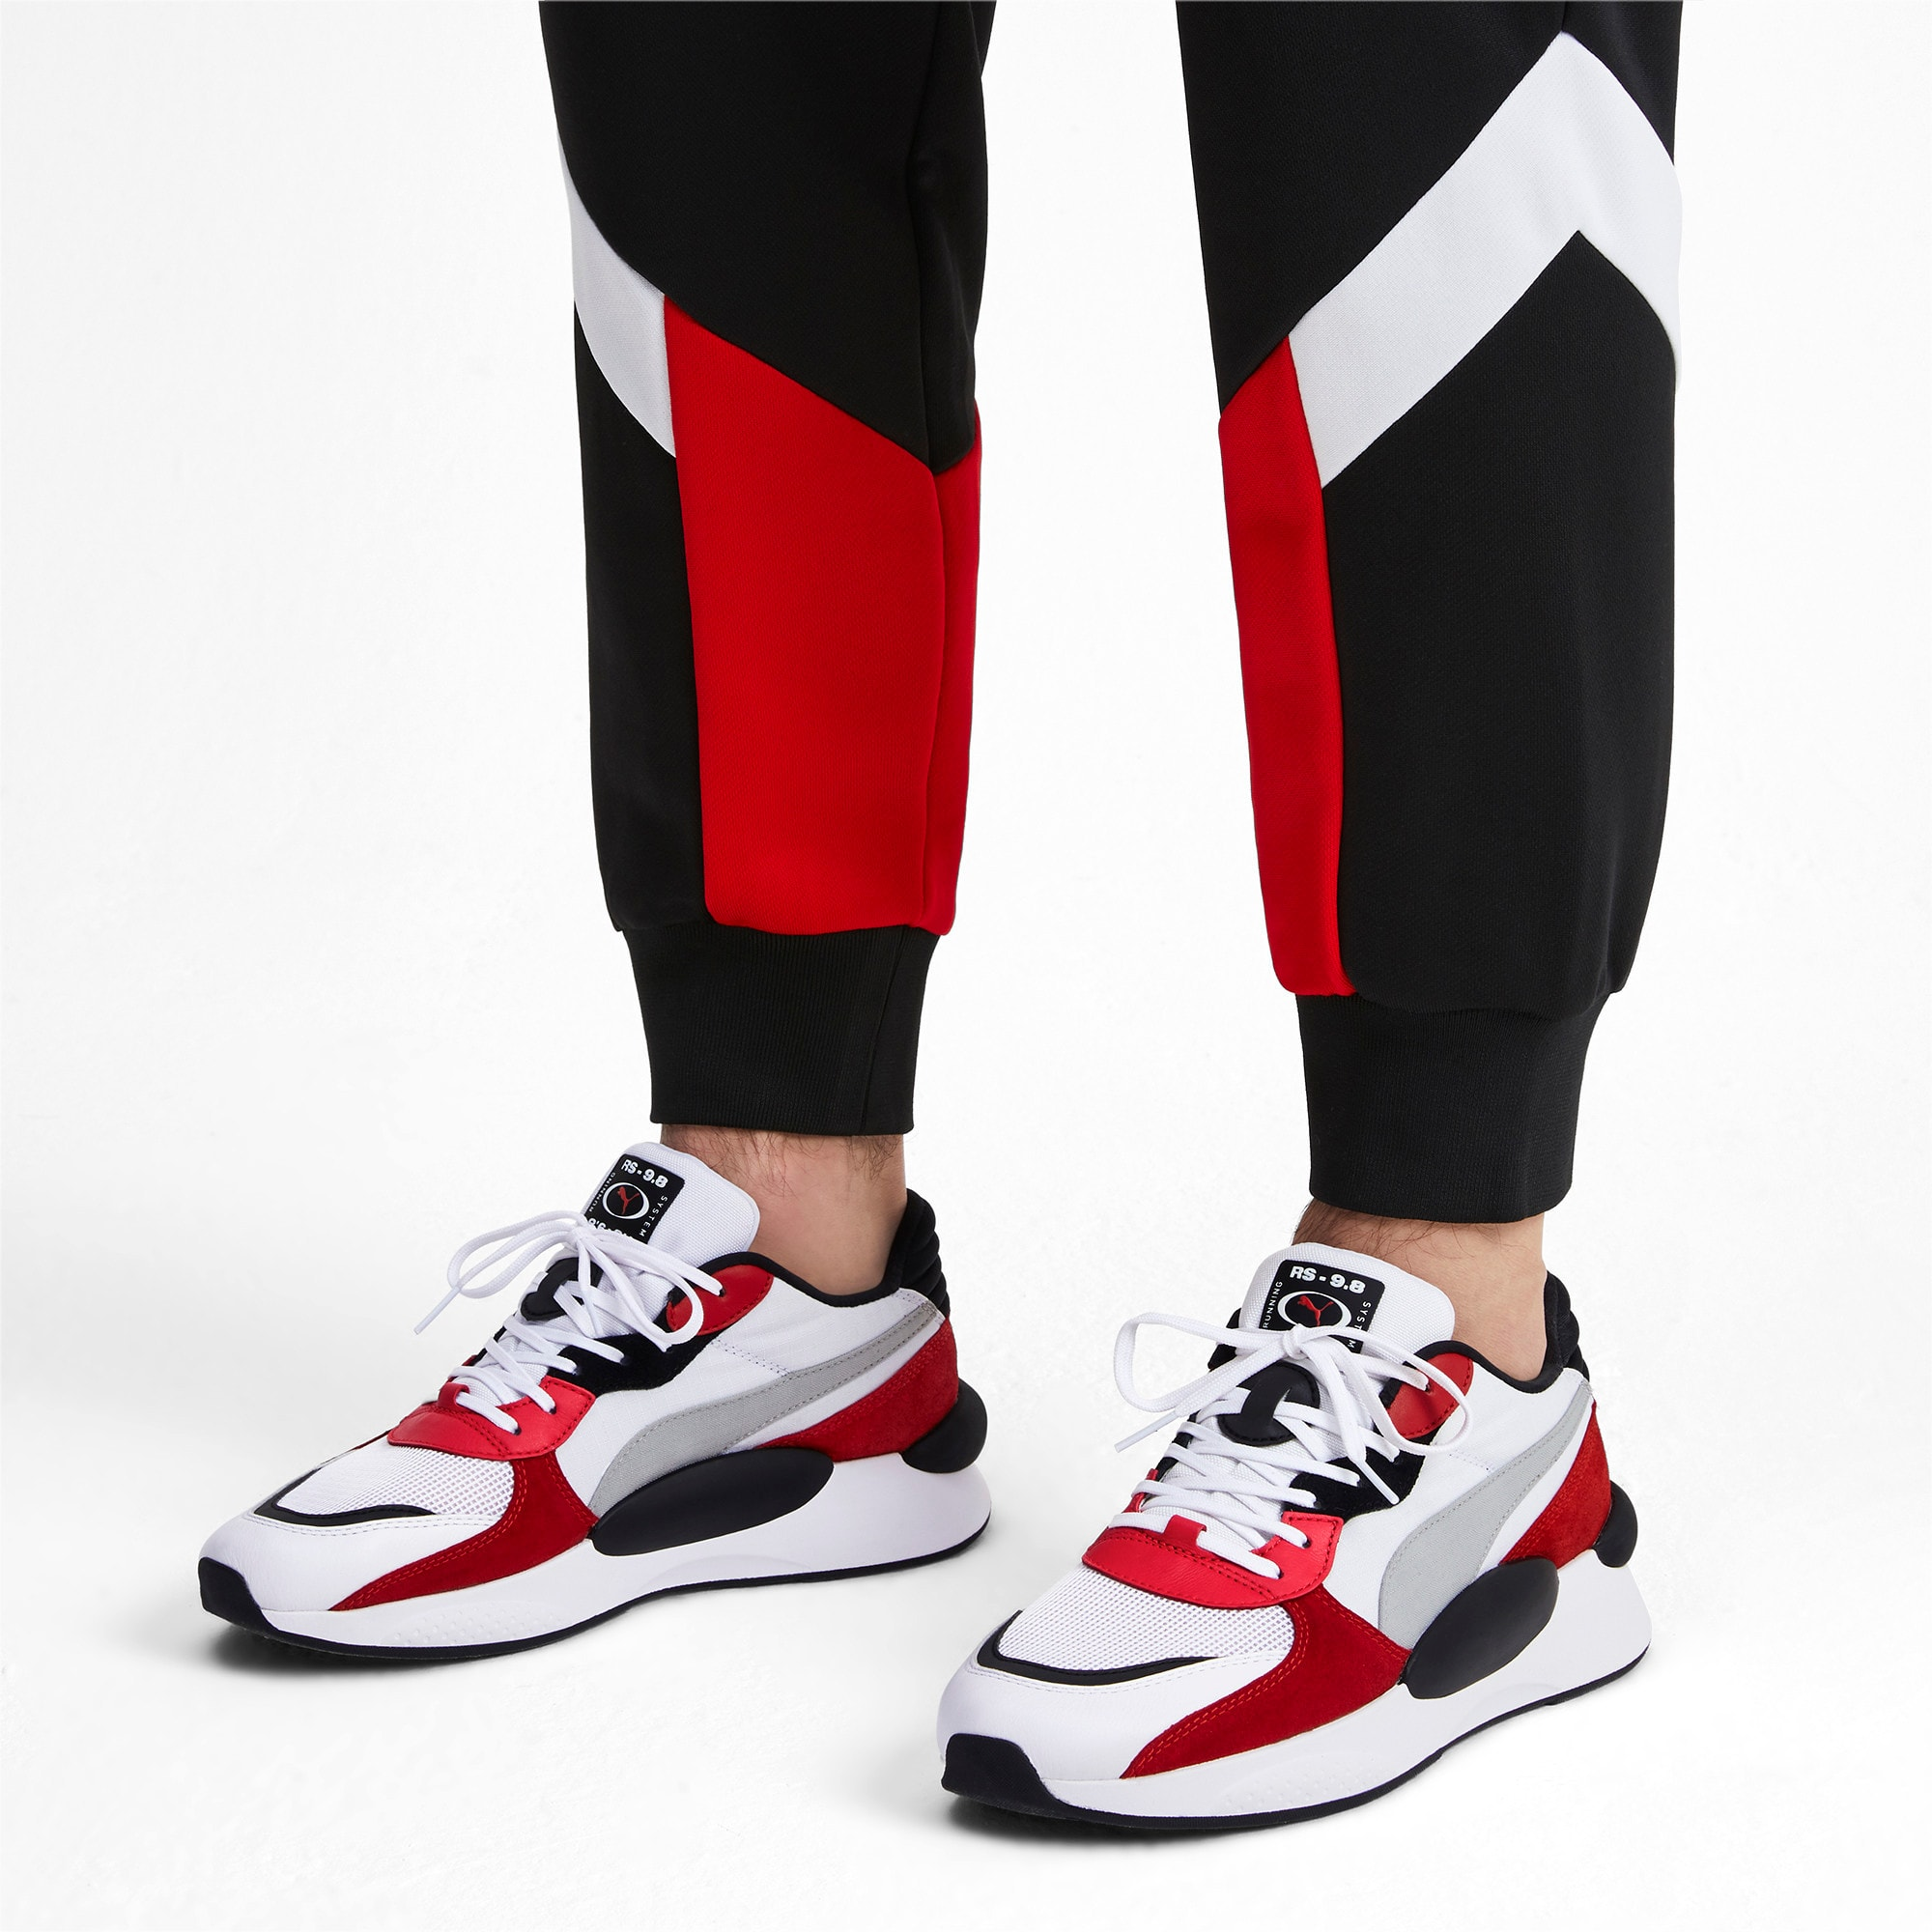 Thumbnail 3 of RS 9.8 Space Trainers, Puma White-High Risk Red, medium-IND